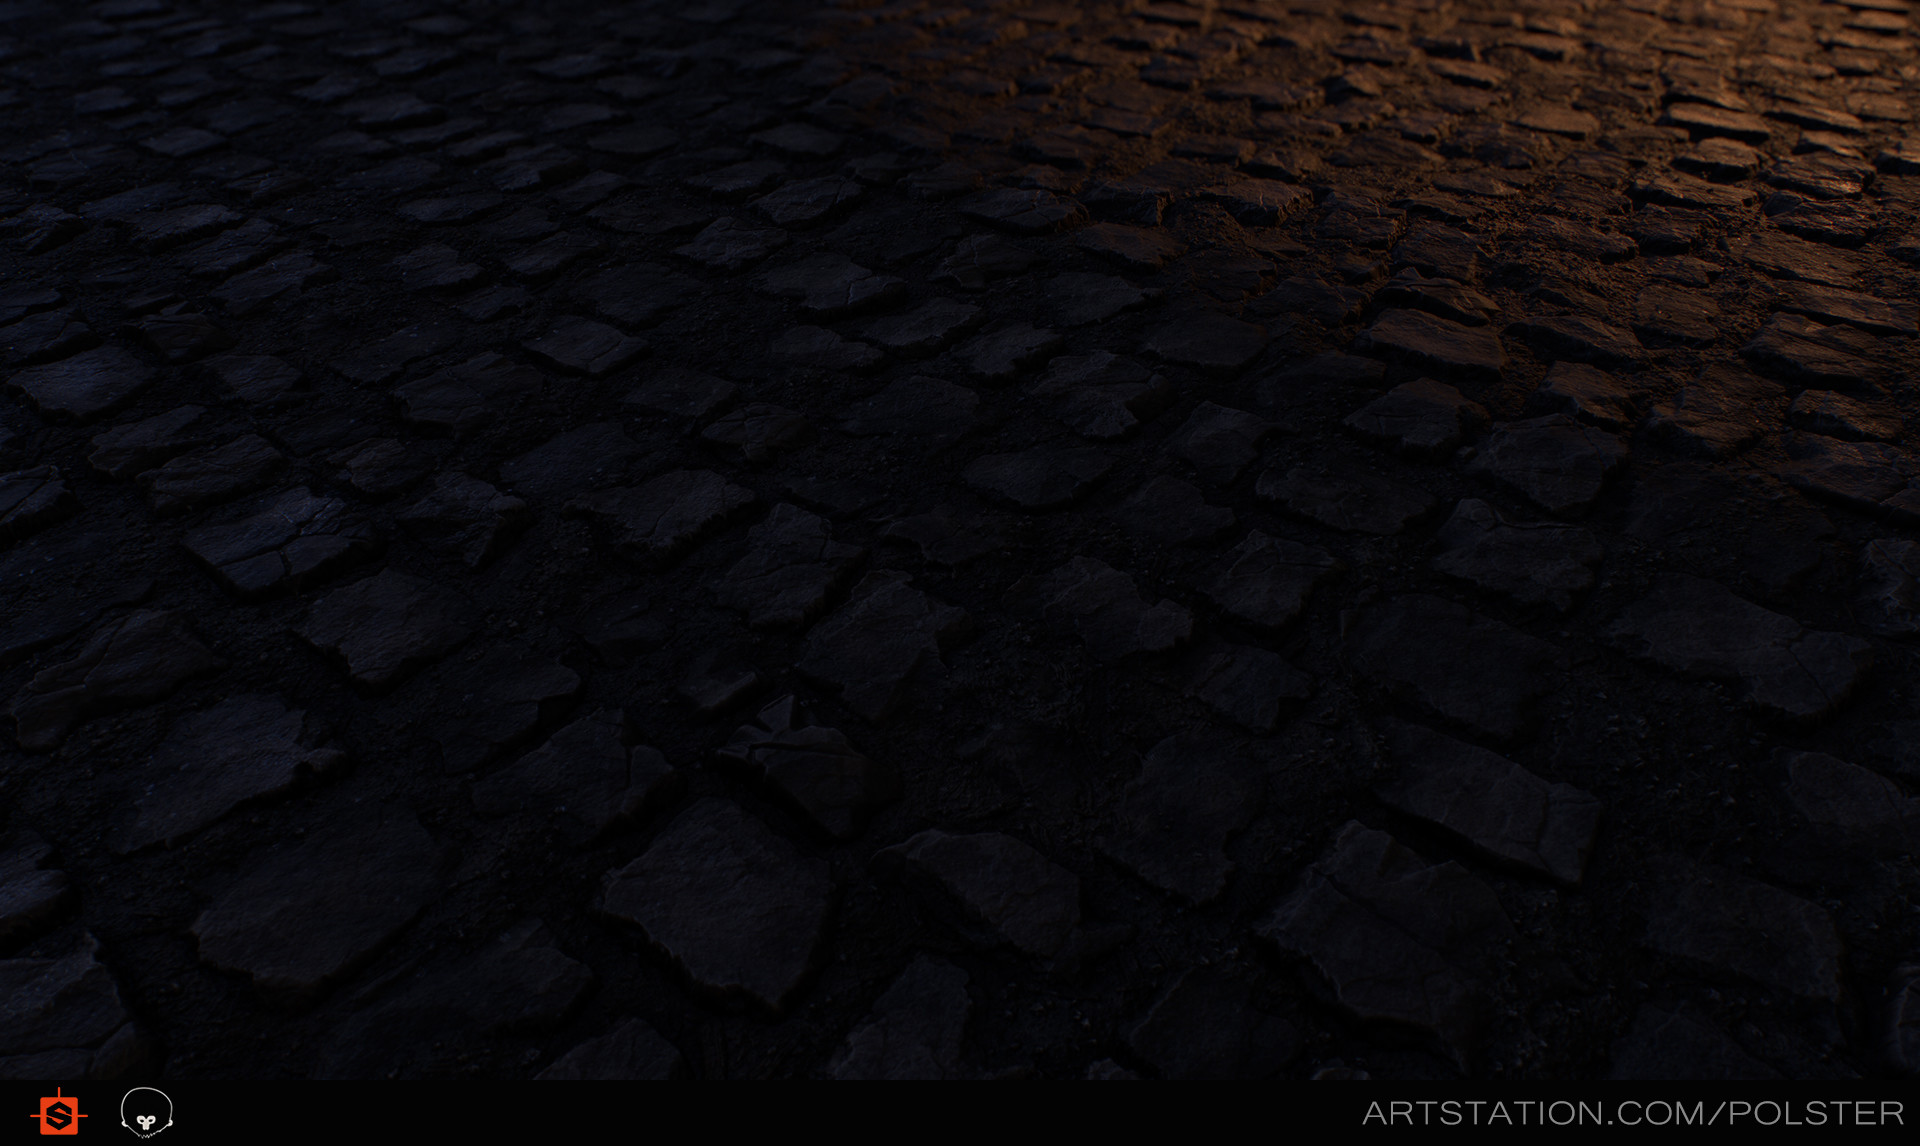 Stefan polster rough cobblestone torches